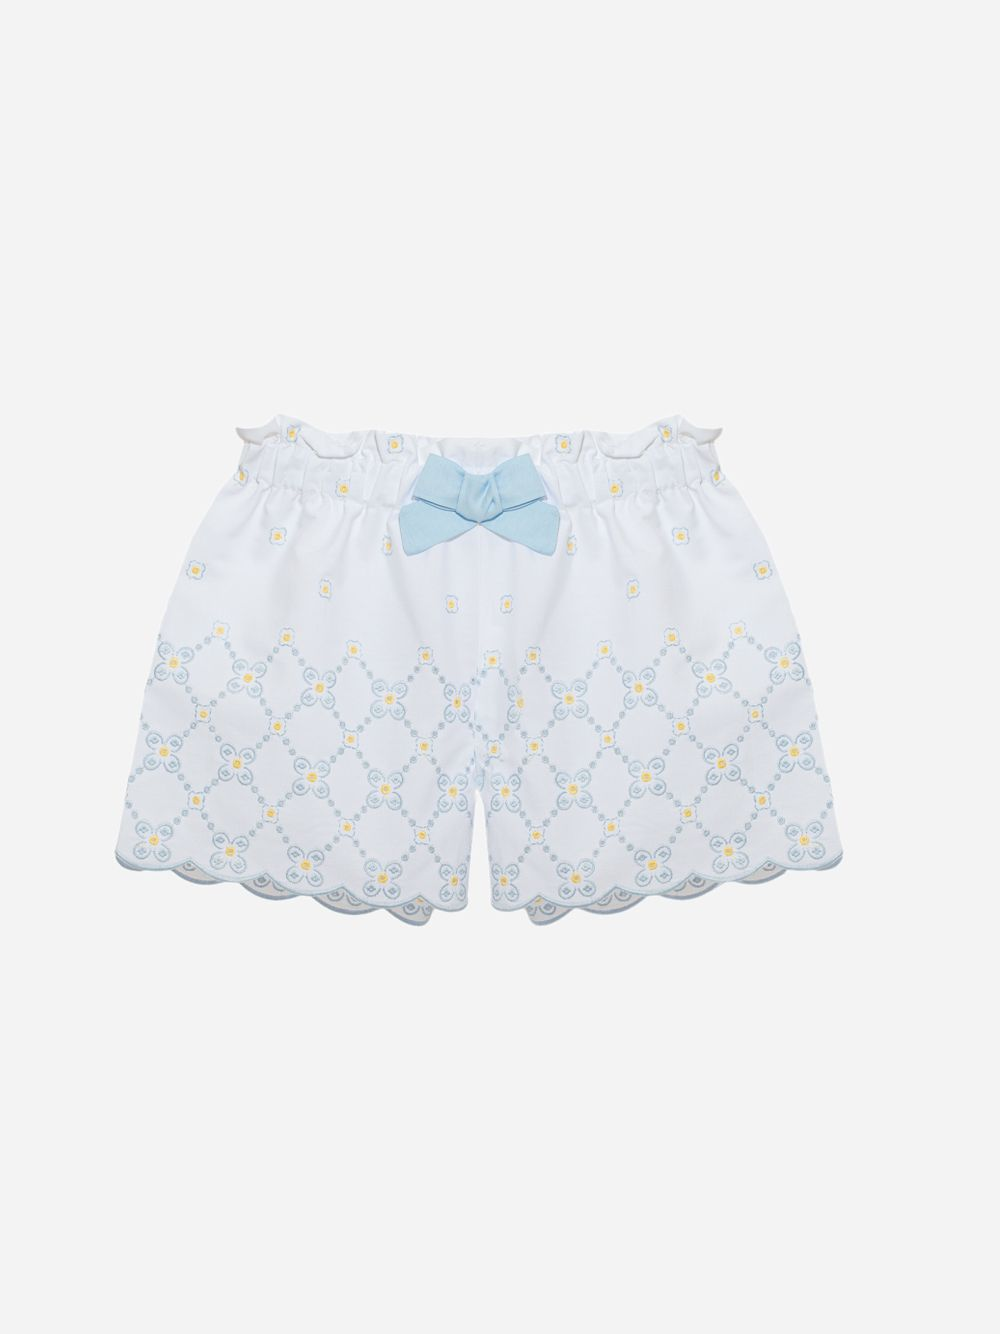 Patachou Cotton Poplin White With Floral Embroidery Shorts